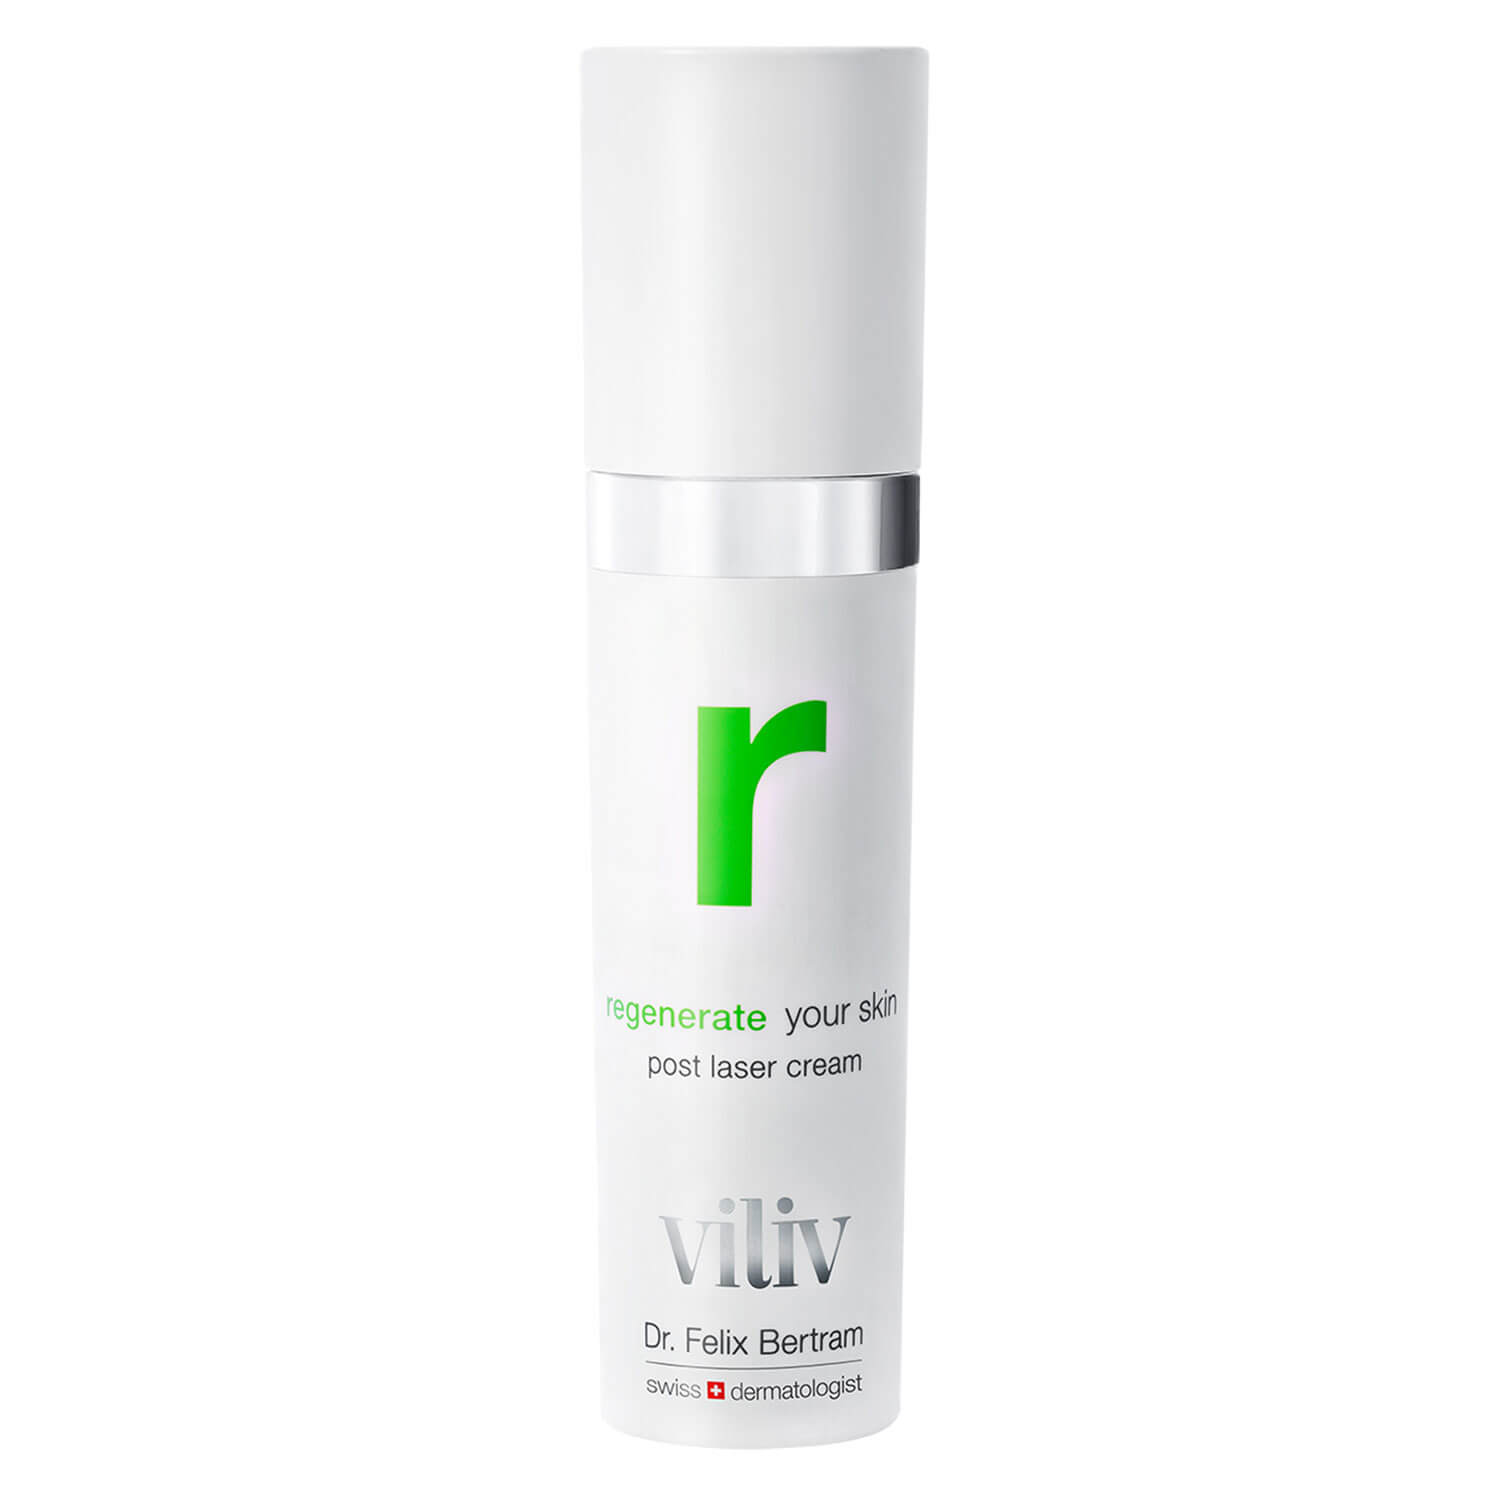 viliv - regenerate your skin post laser cream